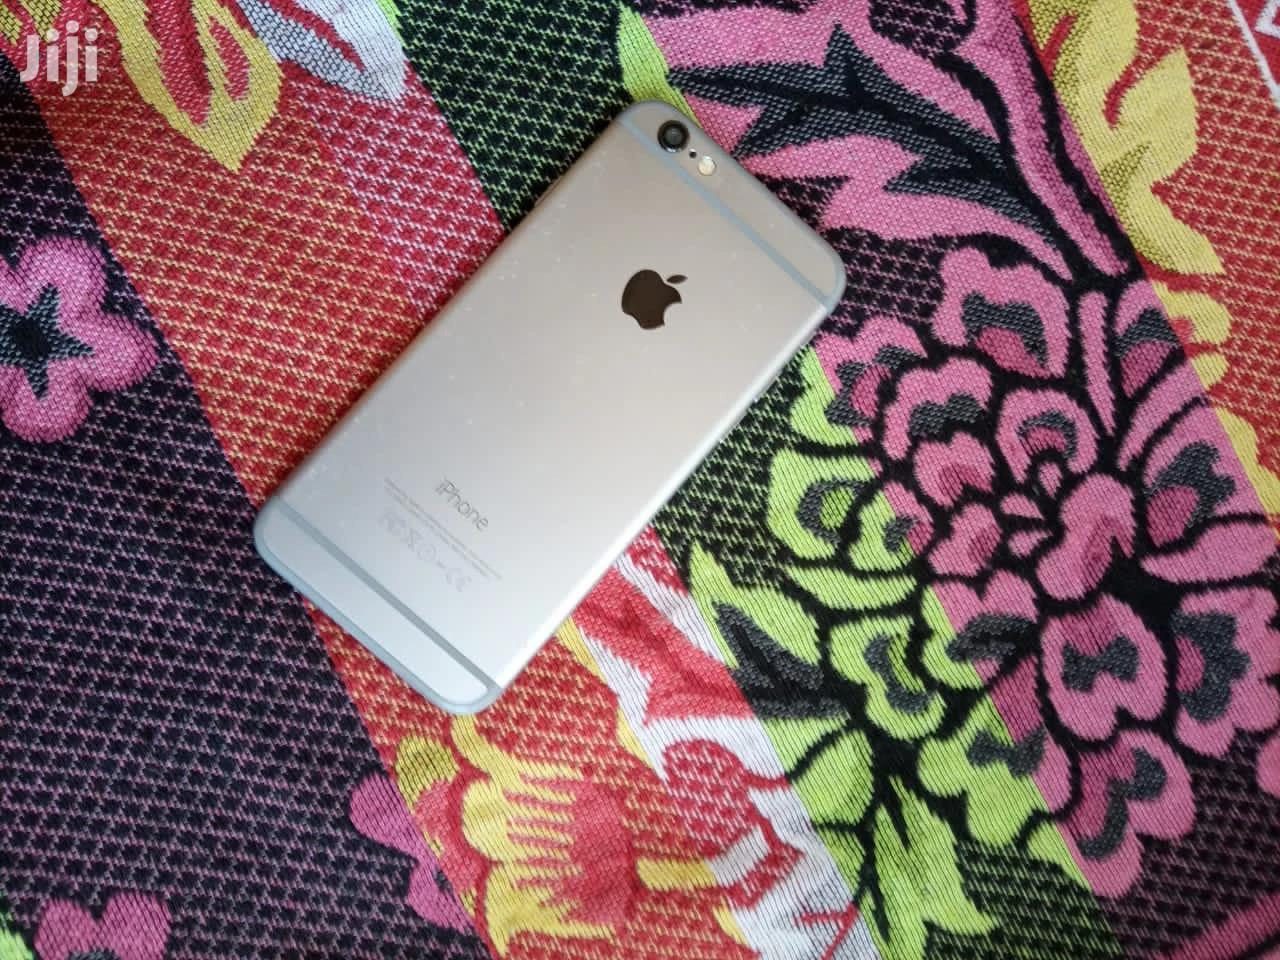 Apple iPhone 6 64 GB Gray | Mobile Phones for sale in Nairobi Central, Nairobi, Kenya